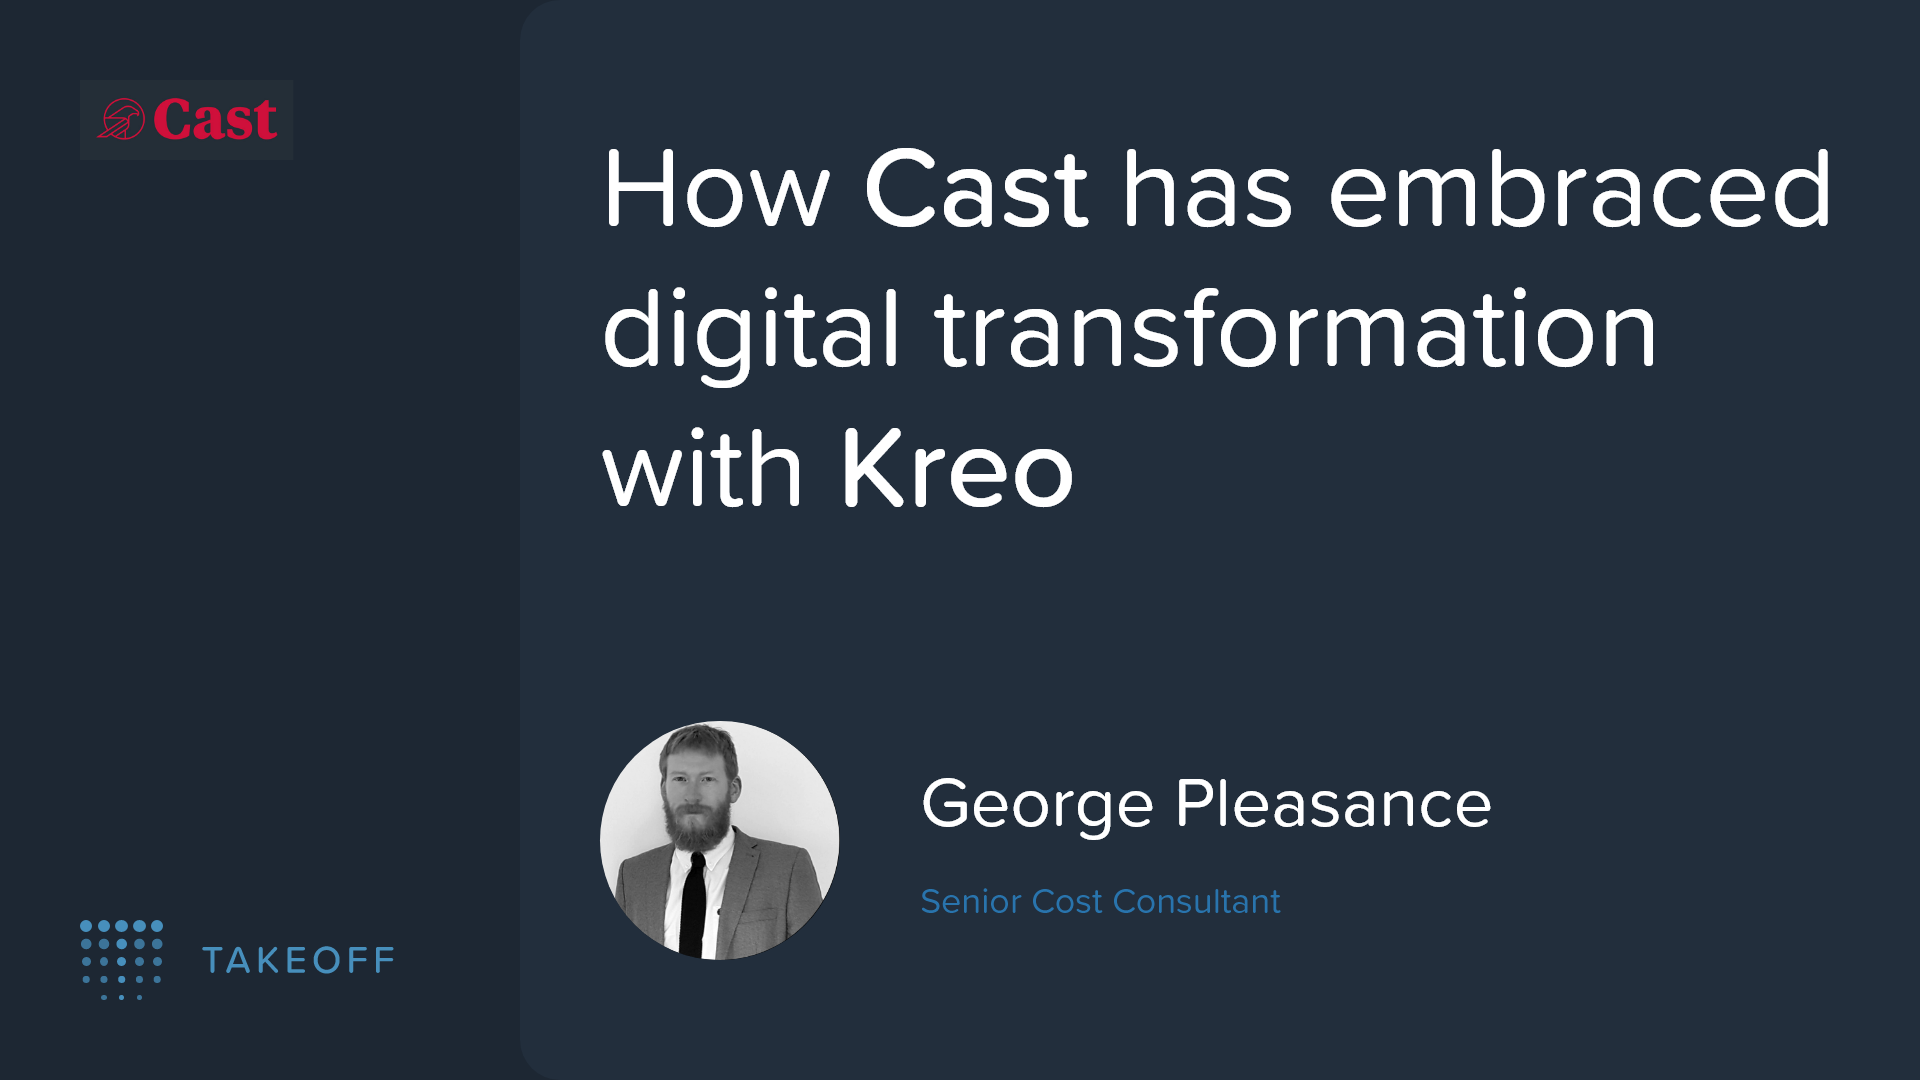 How Cast has embraced digital transformation with Kreo